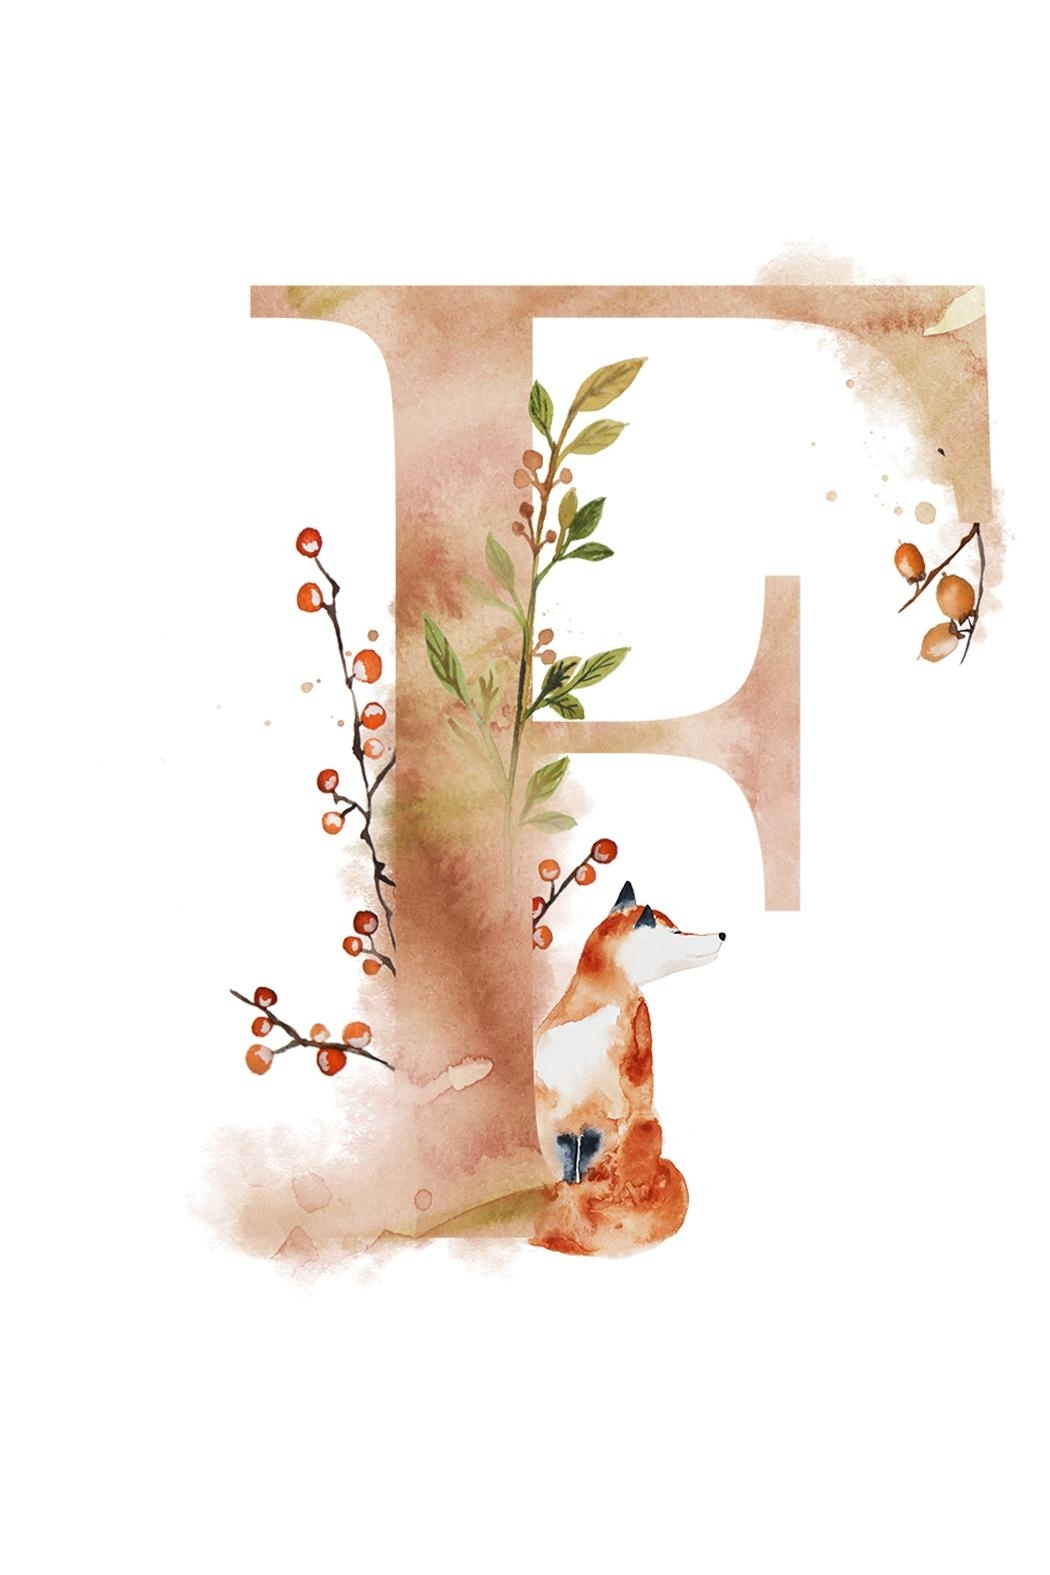 1050x1575 Urban Sassafras F Watercolor Letter Print From Illinois By Urban